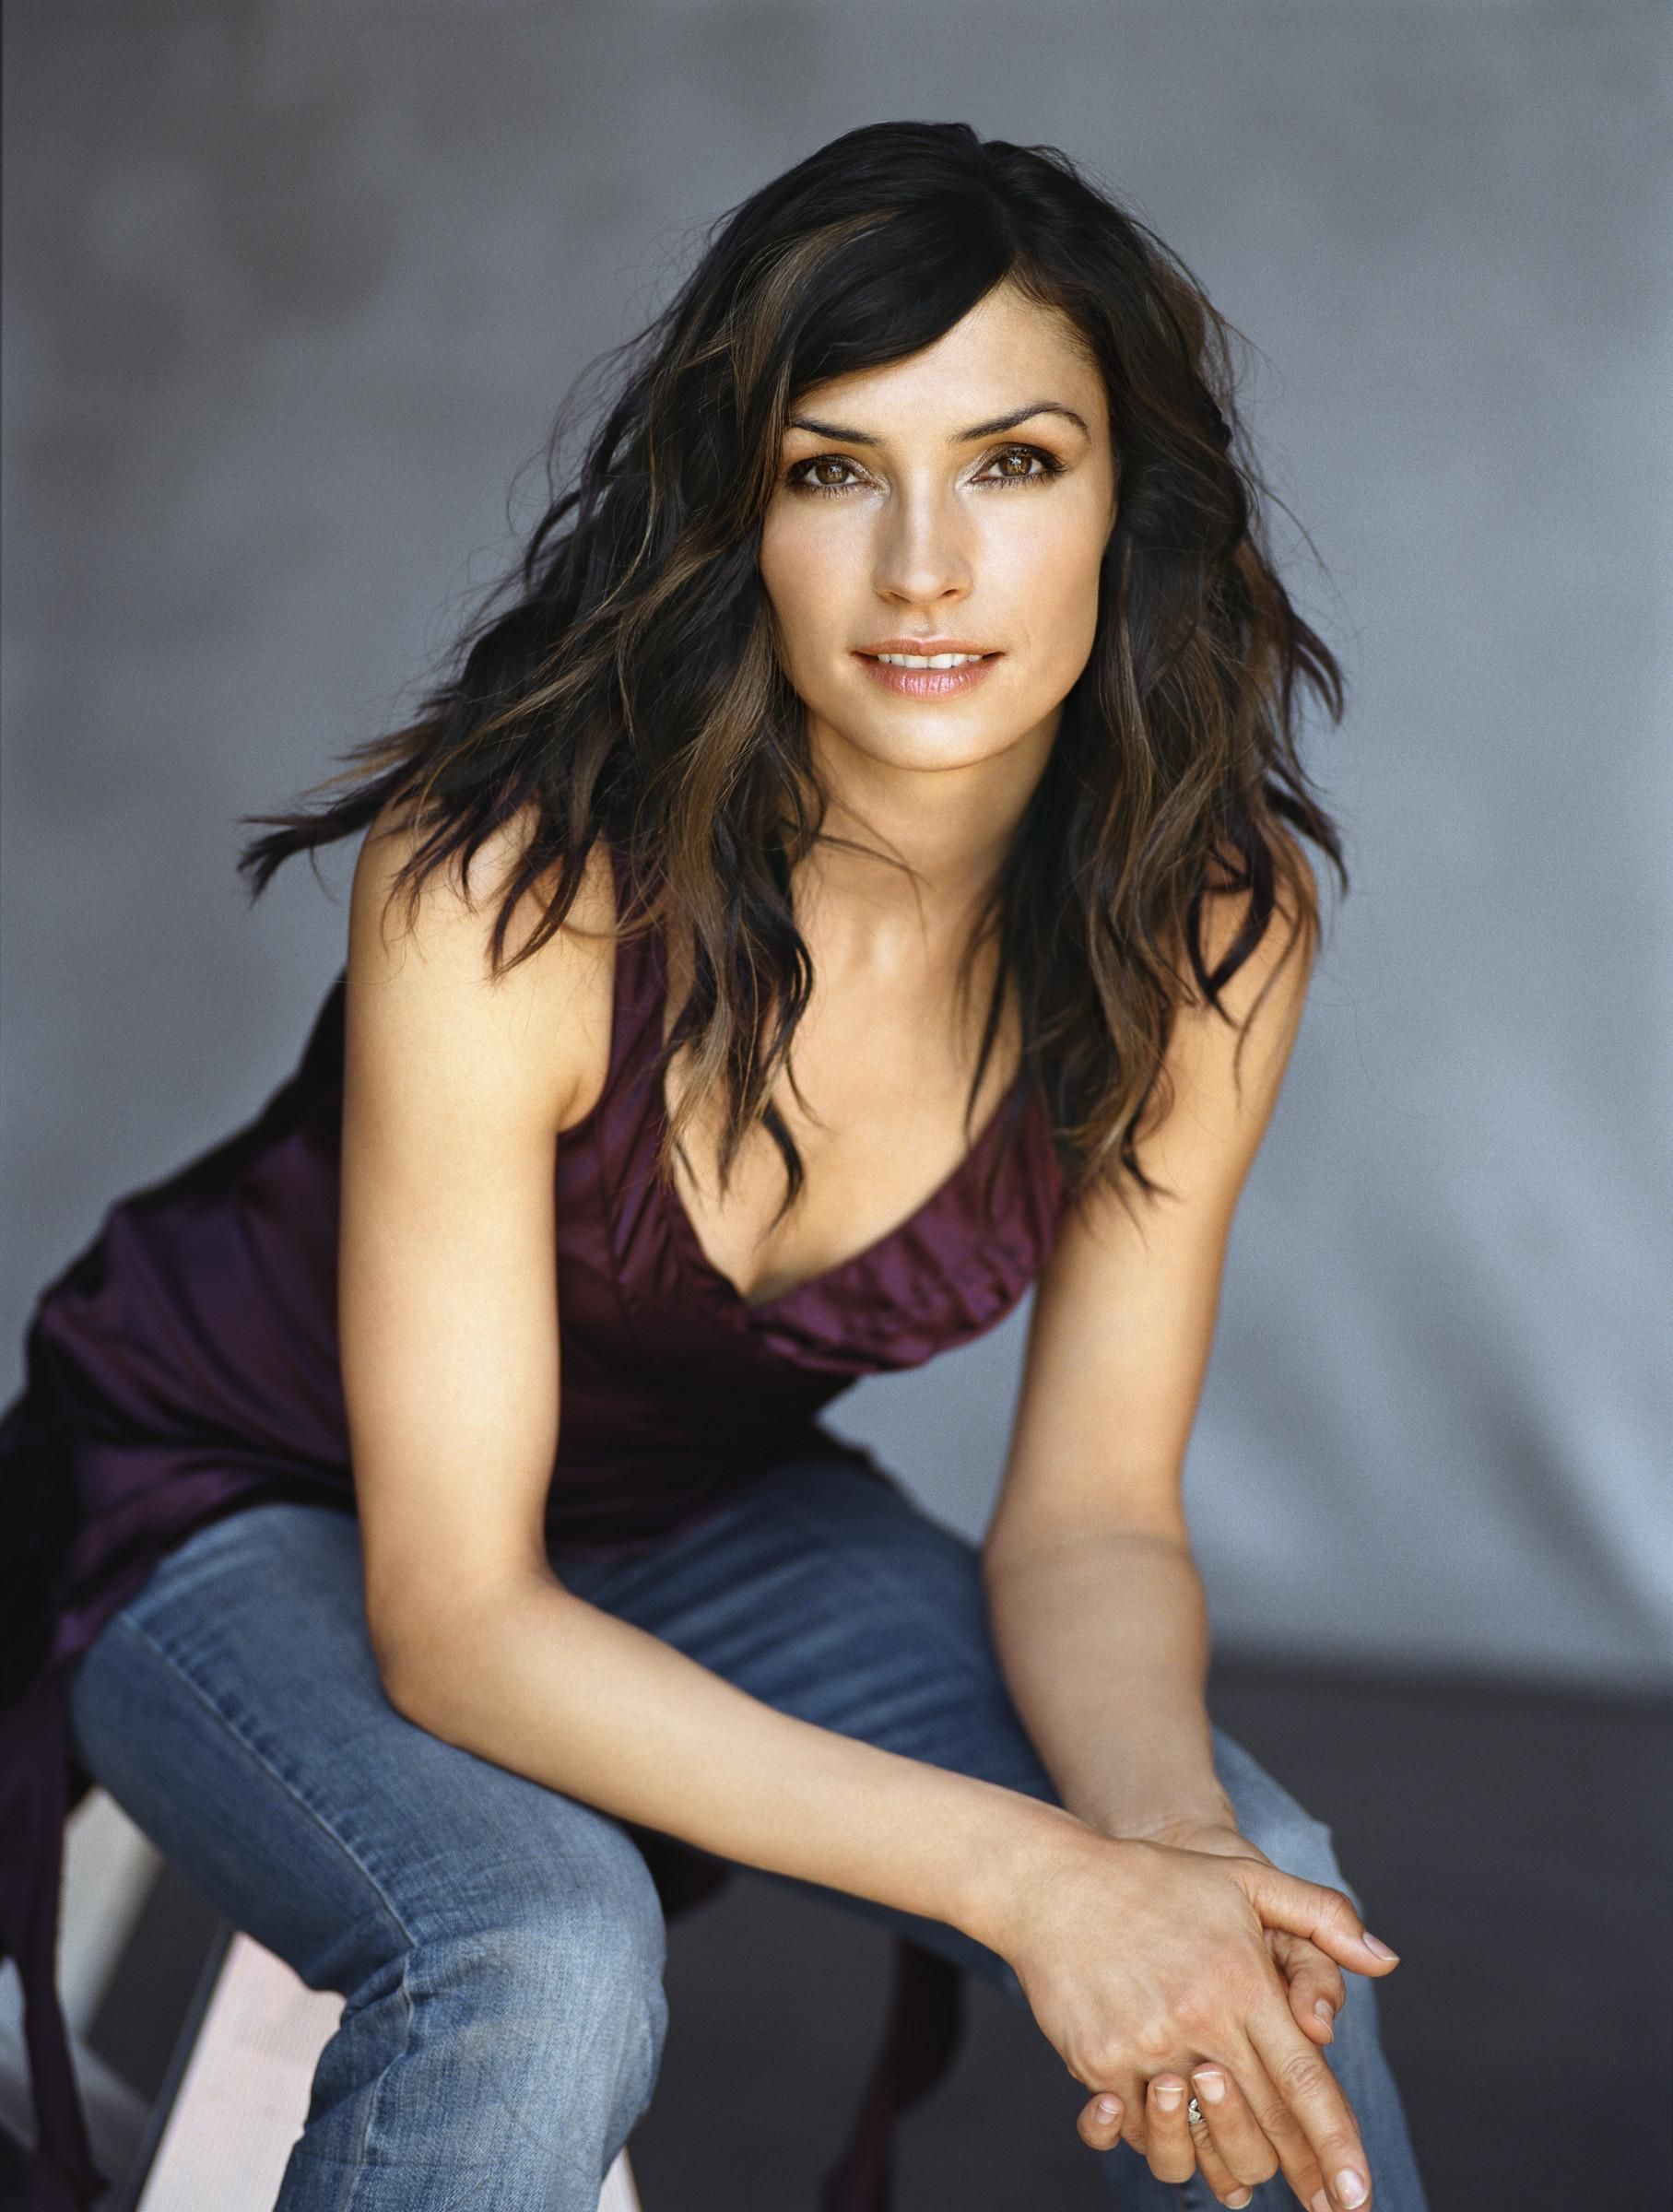 Cleavage Famke Janssen nude (69 foto and video), Tits, Cleavage, Instagram, see through 2006